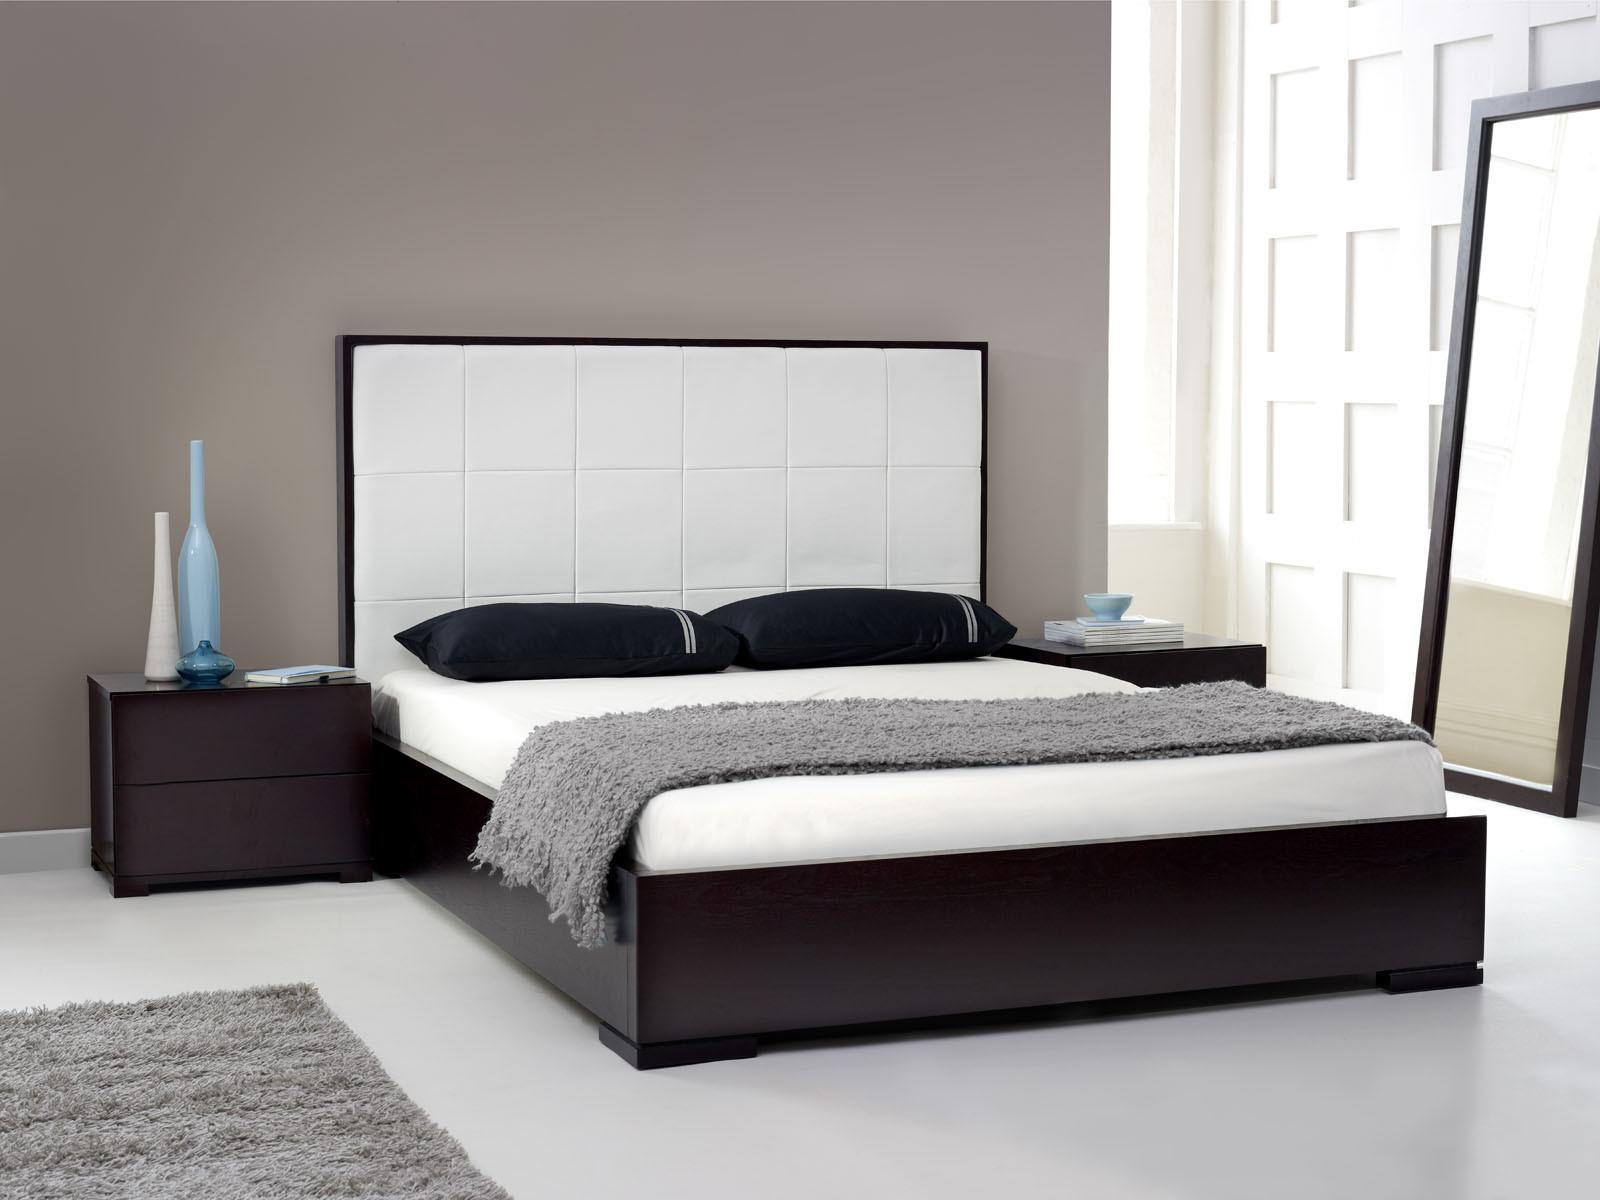 Our Modern Bedroom Furniture